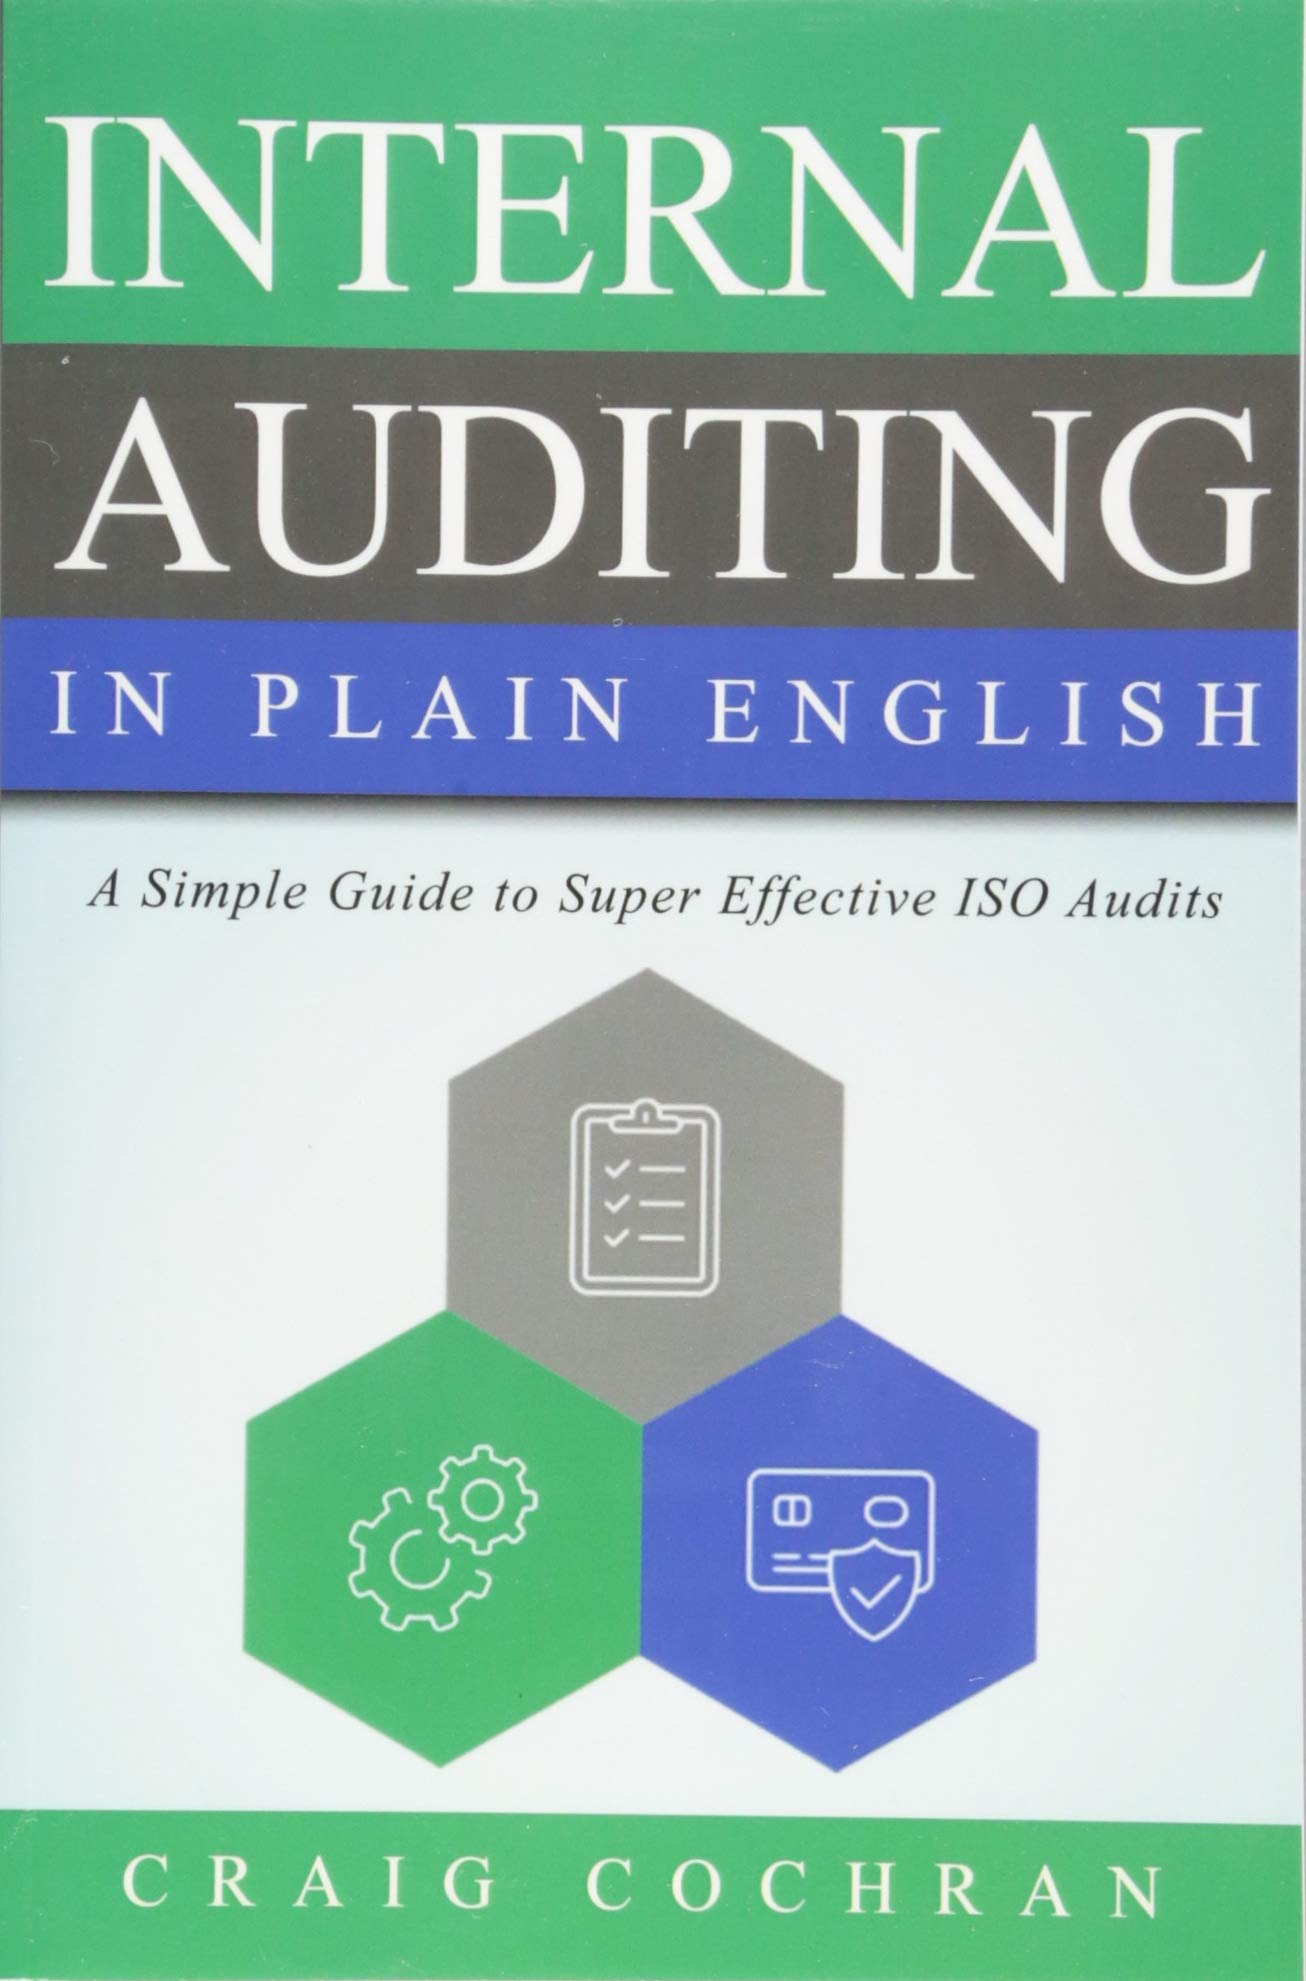 Internal Auditing in Plain English: A Simple Guide to Super